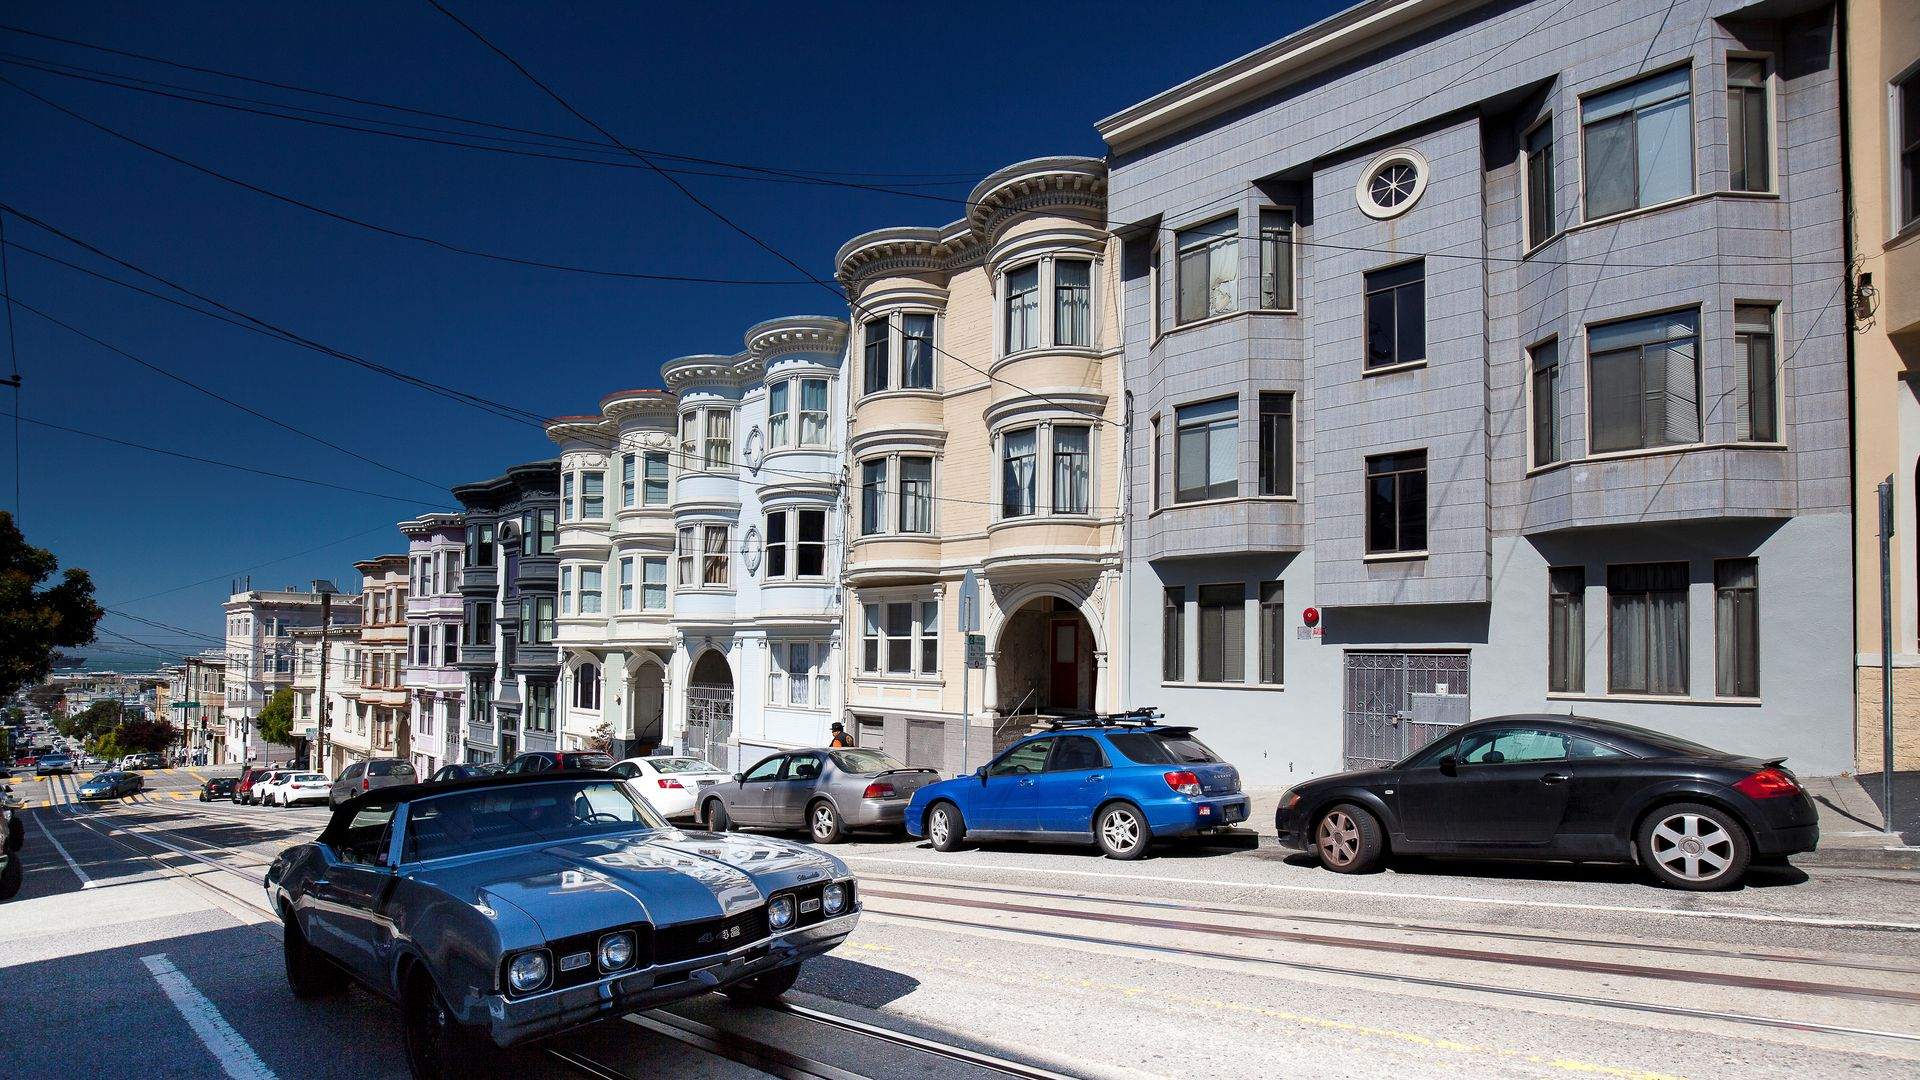 Photo of a row of apartment buildings in San Francisco.